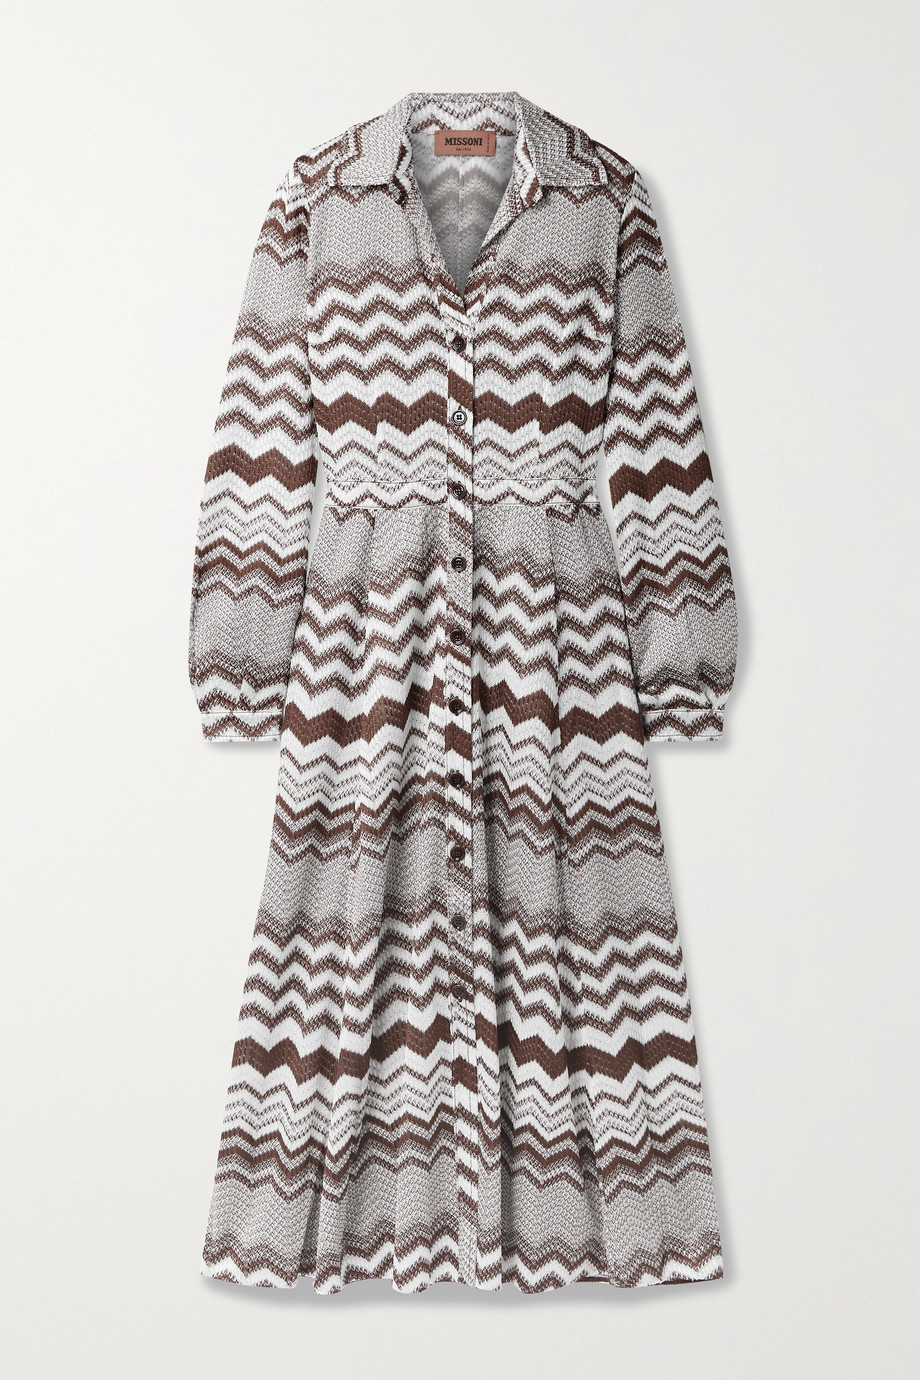 Missoni Crochet-knit shirt dress